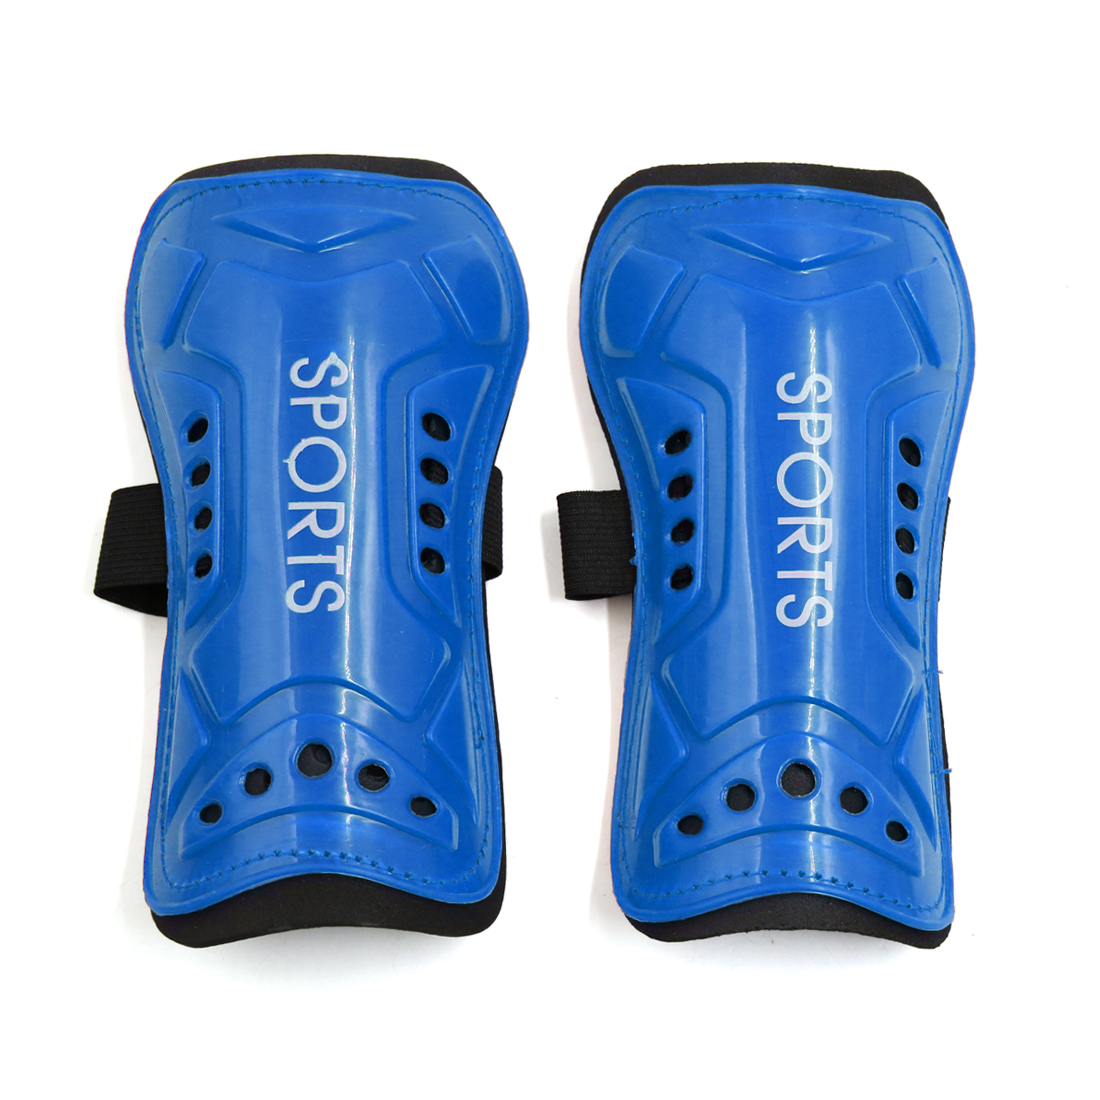 1 Pair Blue Plastic Foam Football Outdoor Sports Shin Pad Protective Gear Legs Guards